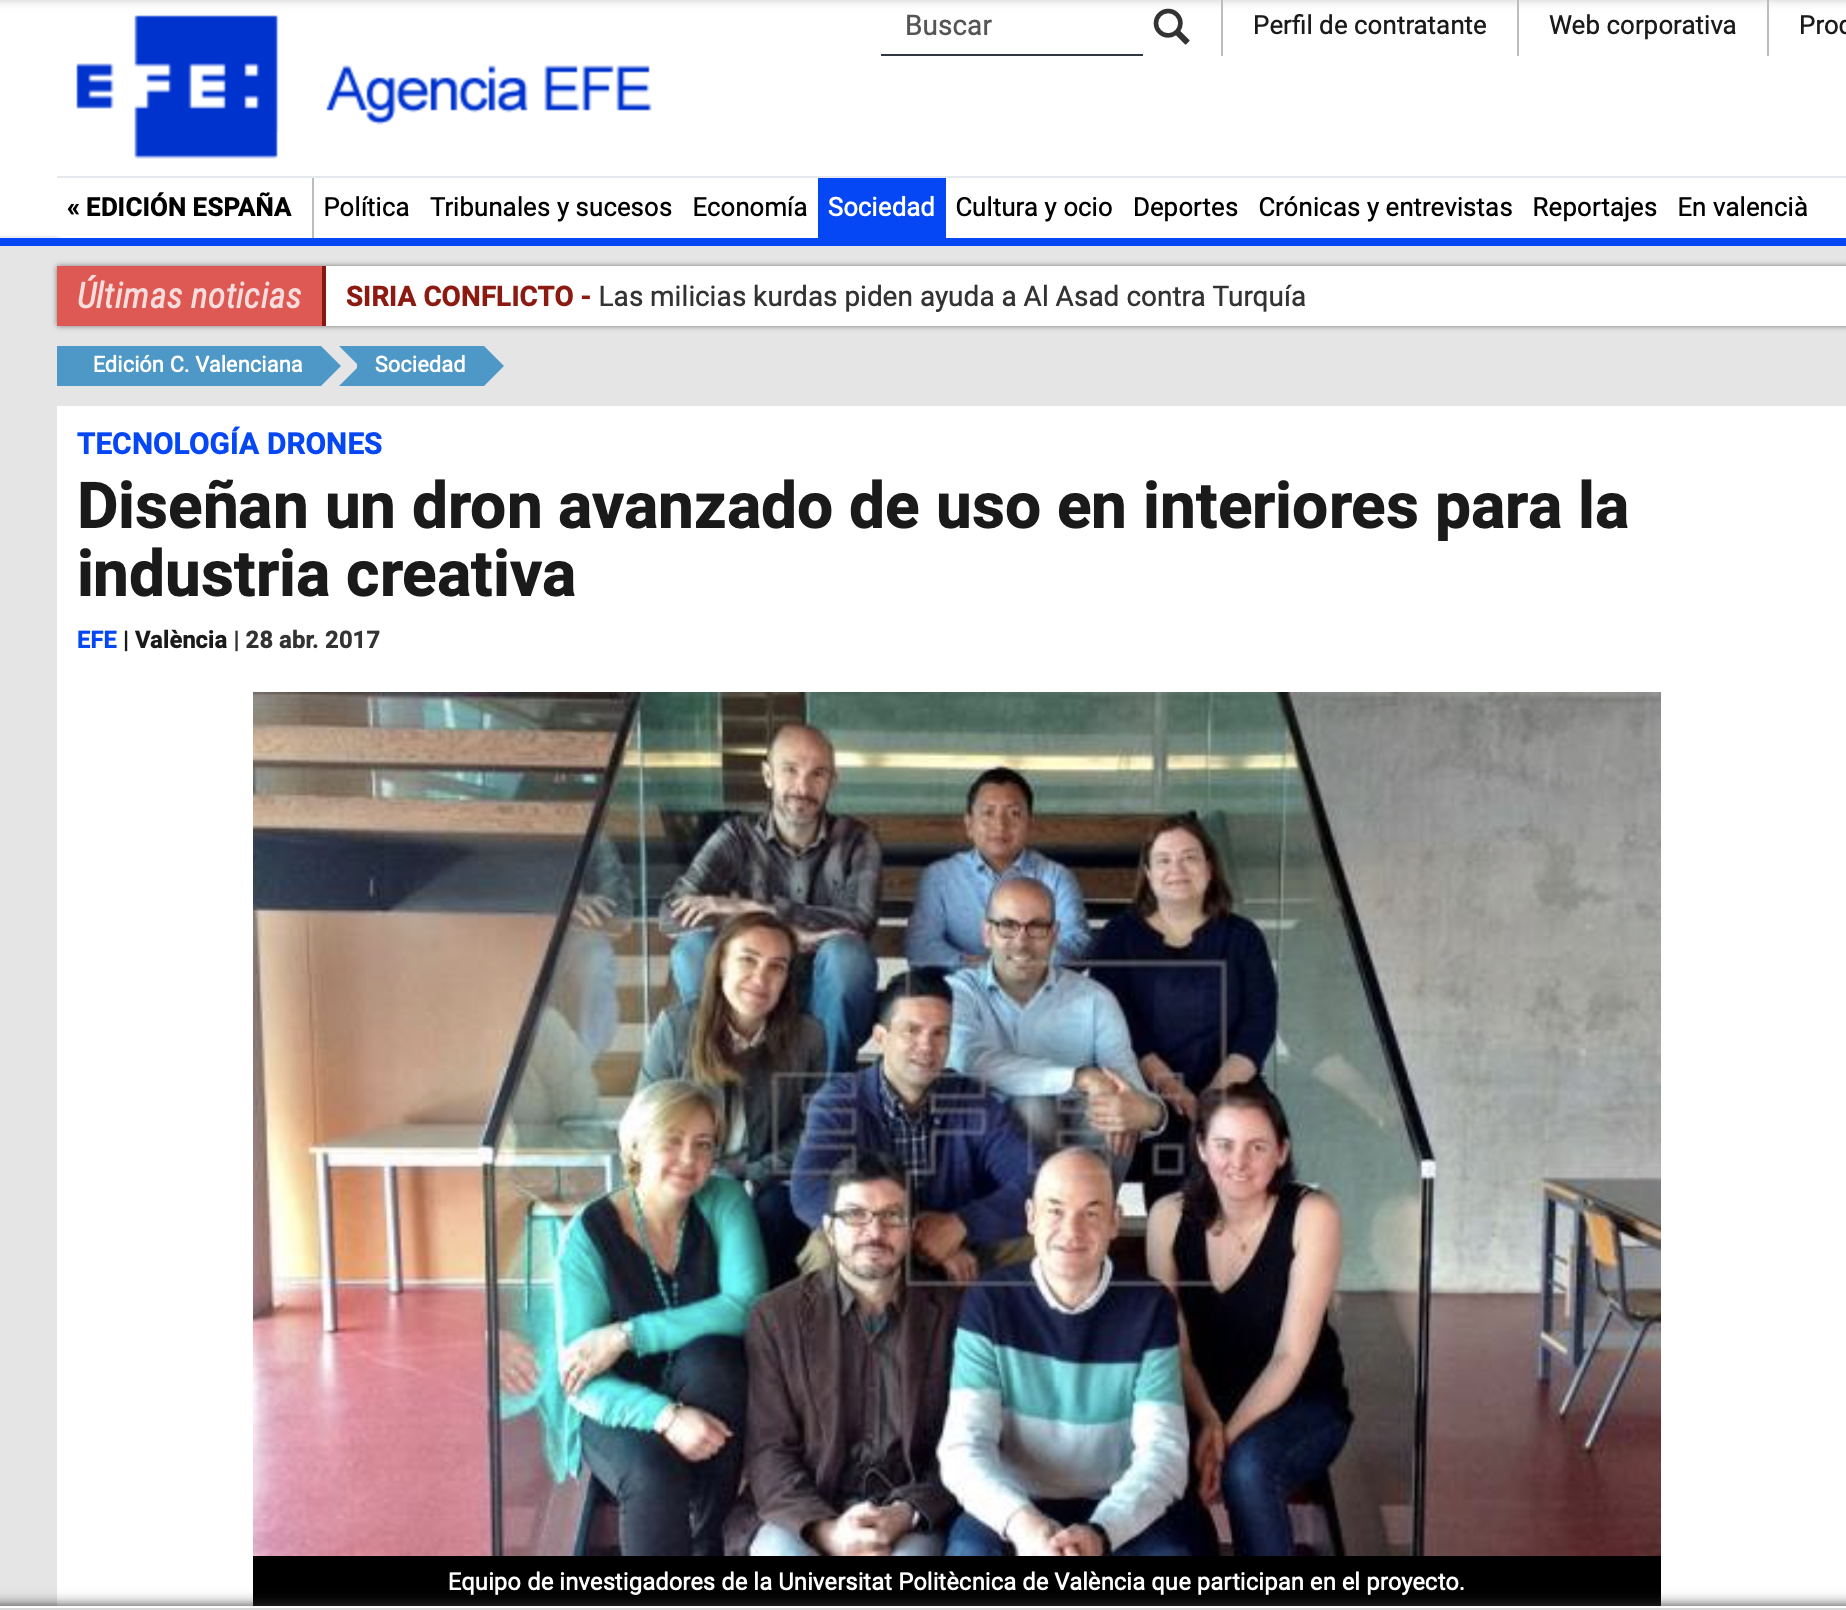 AiRT in Agencia EFE